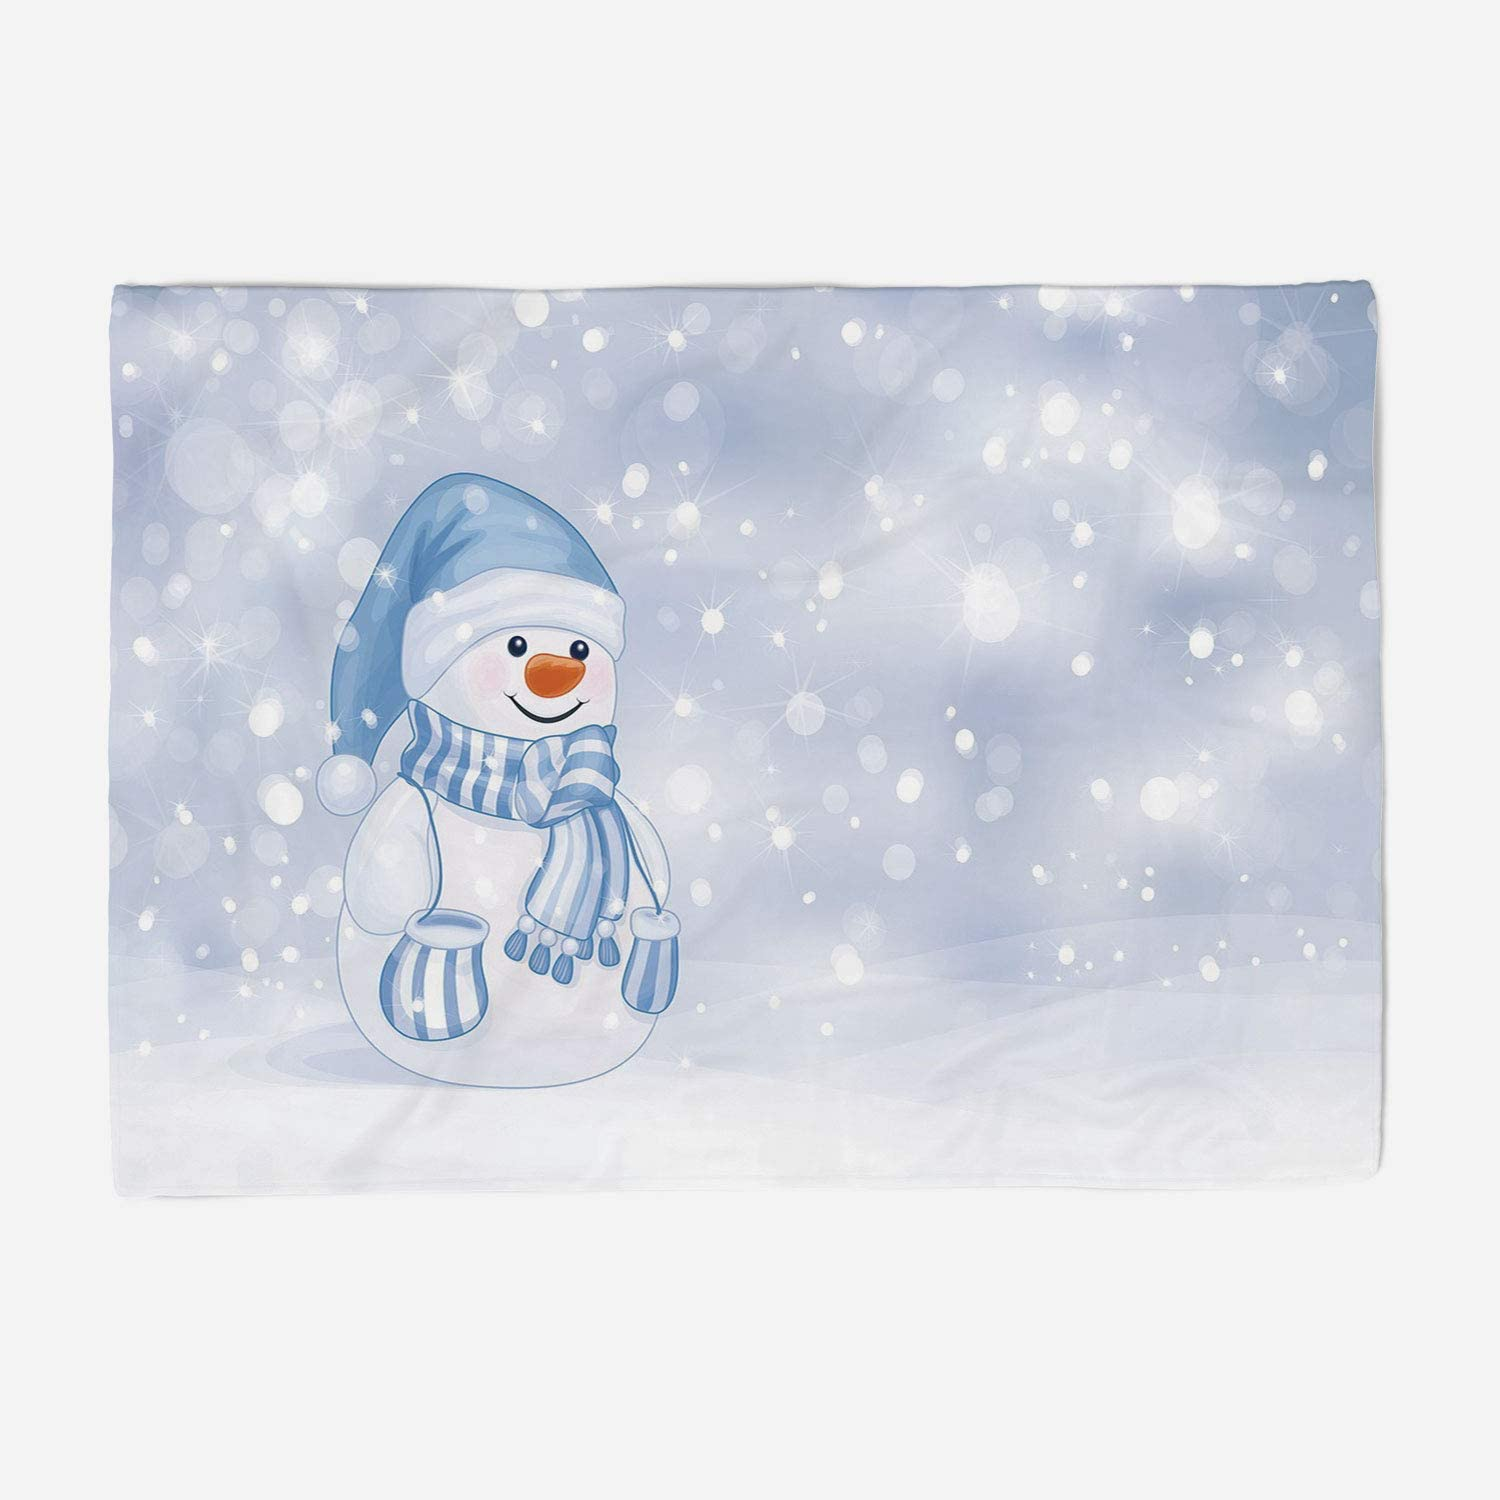 YOLIYANA Microfiber Throw Blanket Set Perfect for Couch Sofa or Bed 49x39 inches Winter,Kids Toddler Design Happy Snowman Cartoon Style Figure Merry Christmas Theme Decorative